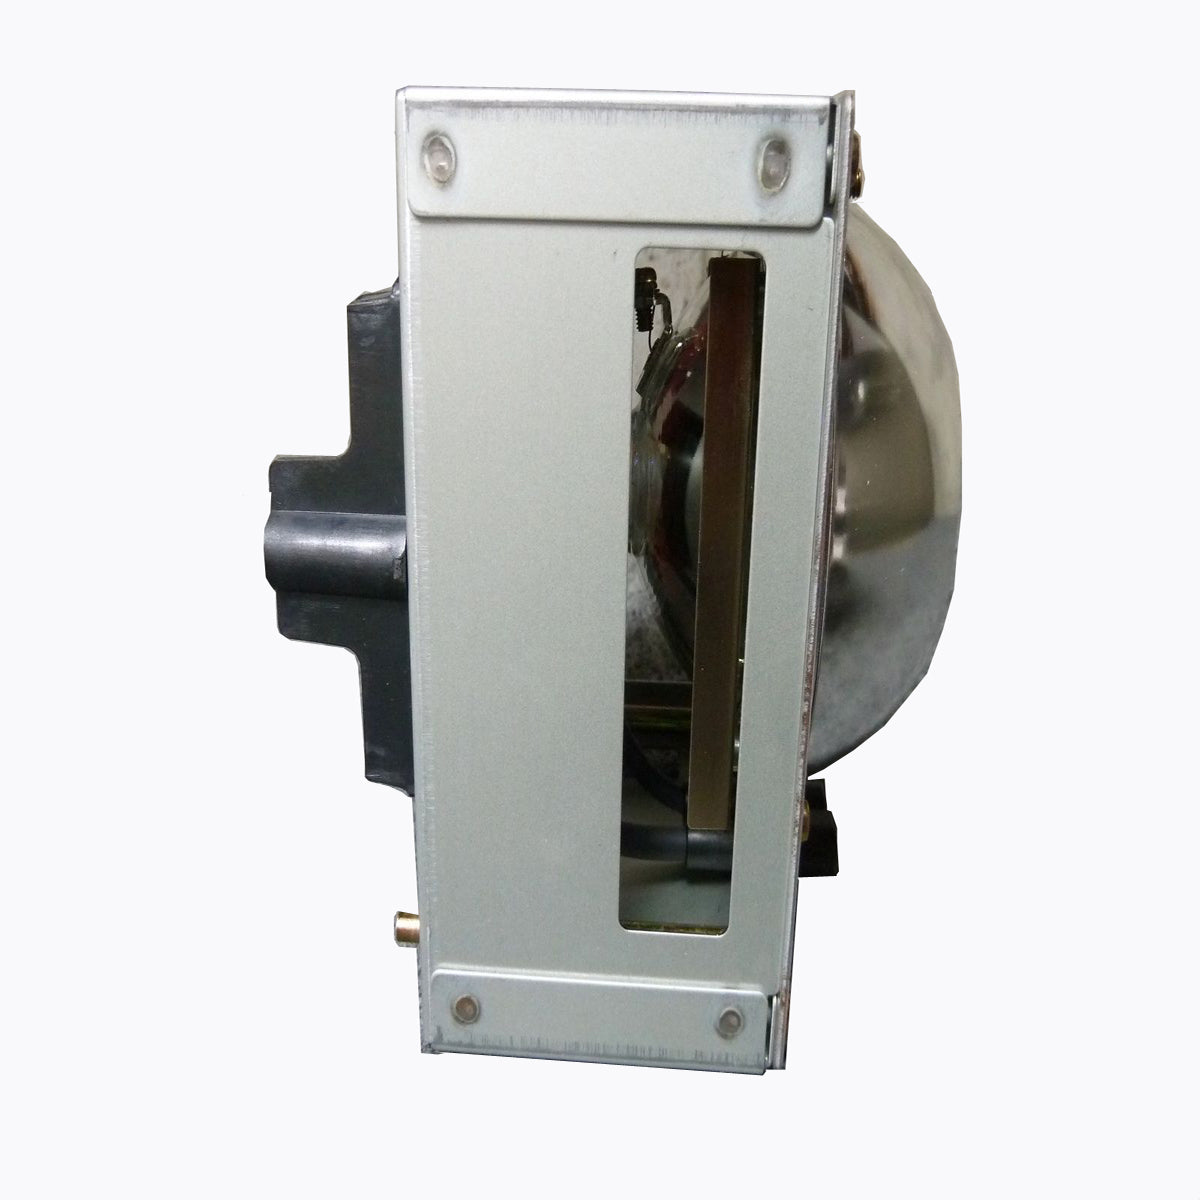 3M 78-6969-8262-4 Compatible Projector Lamp Module